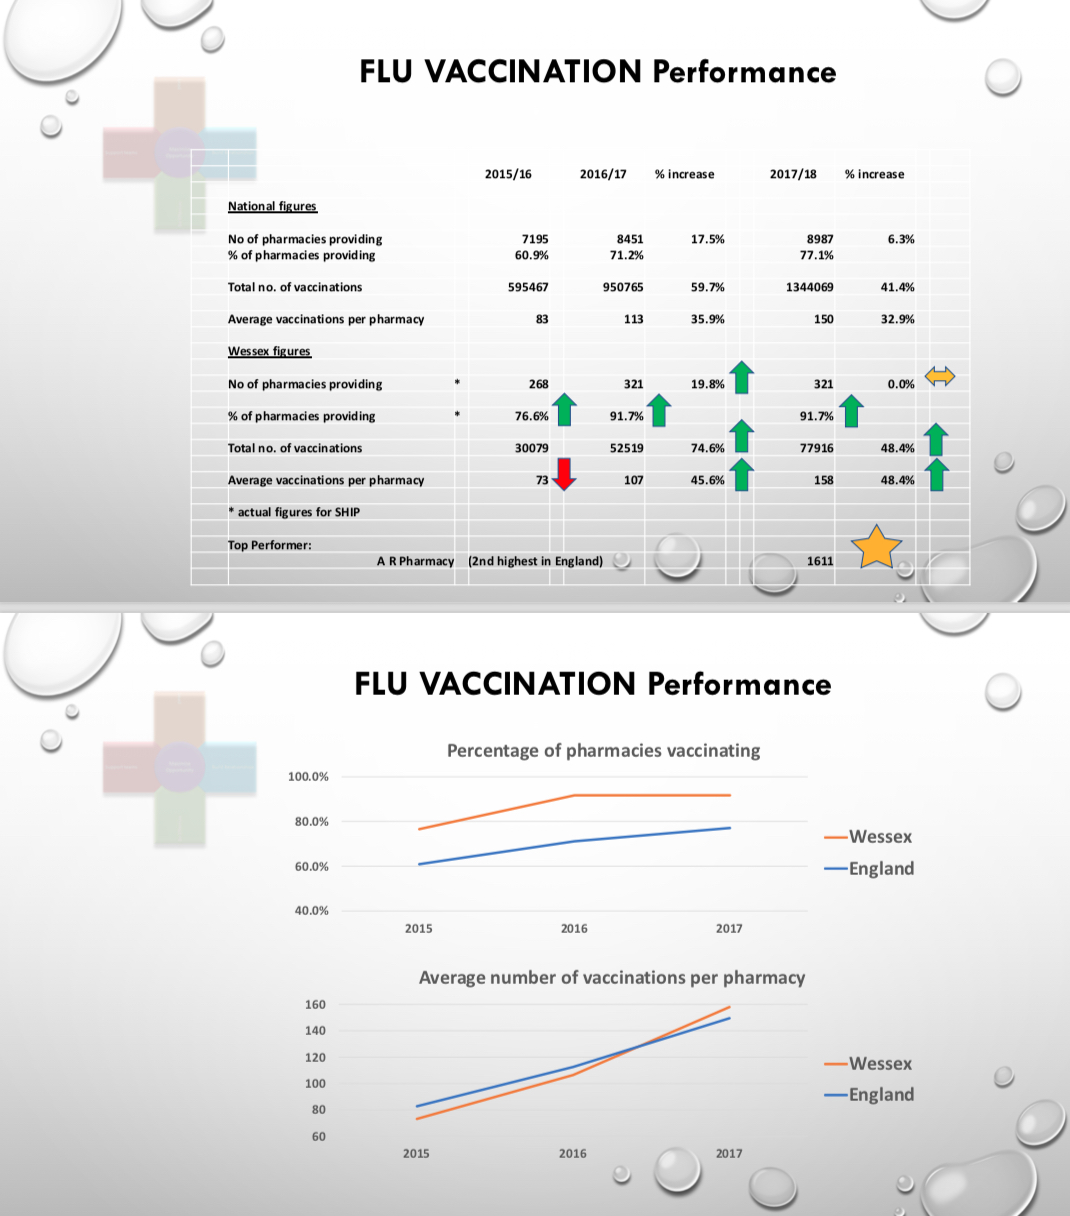 Flu_Vaccination_Performance_infographic_2015-2018.jpg